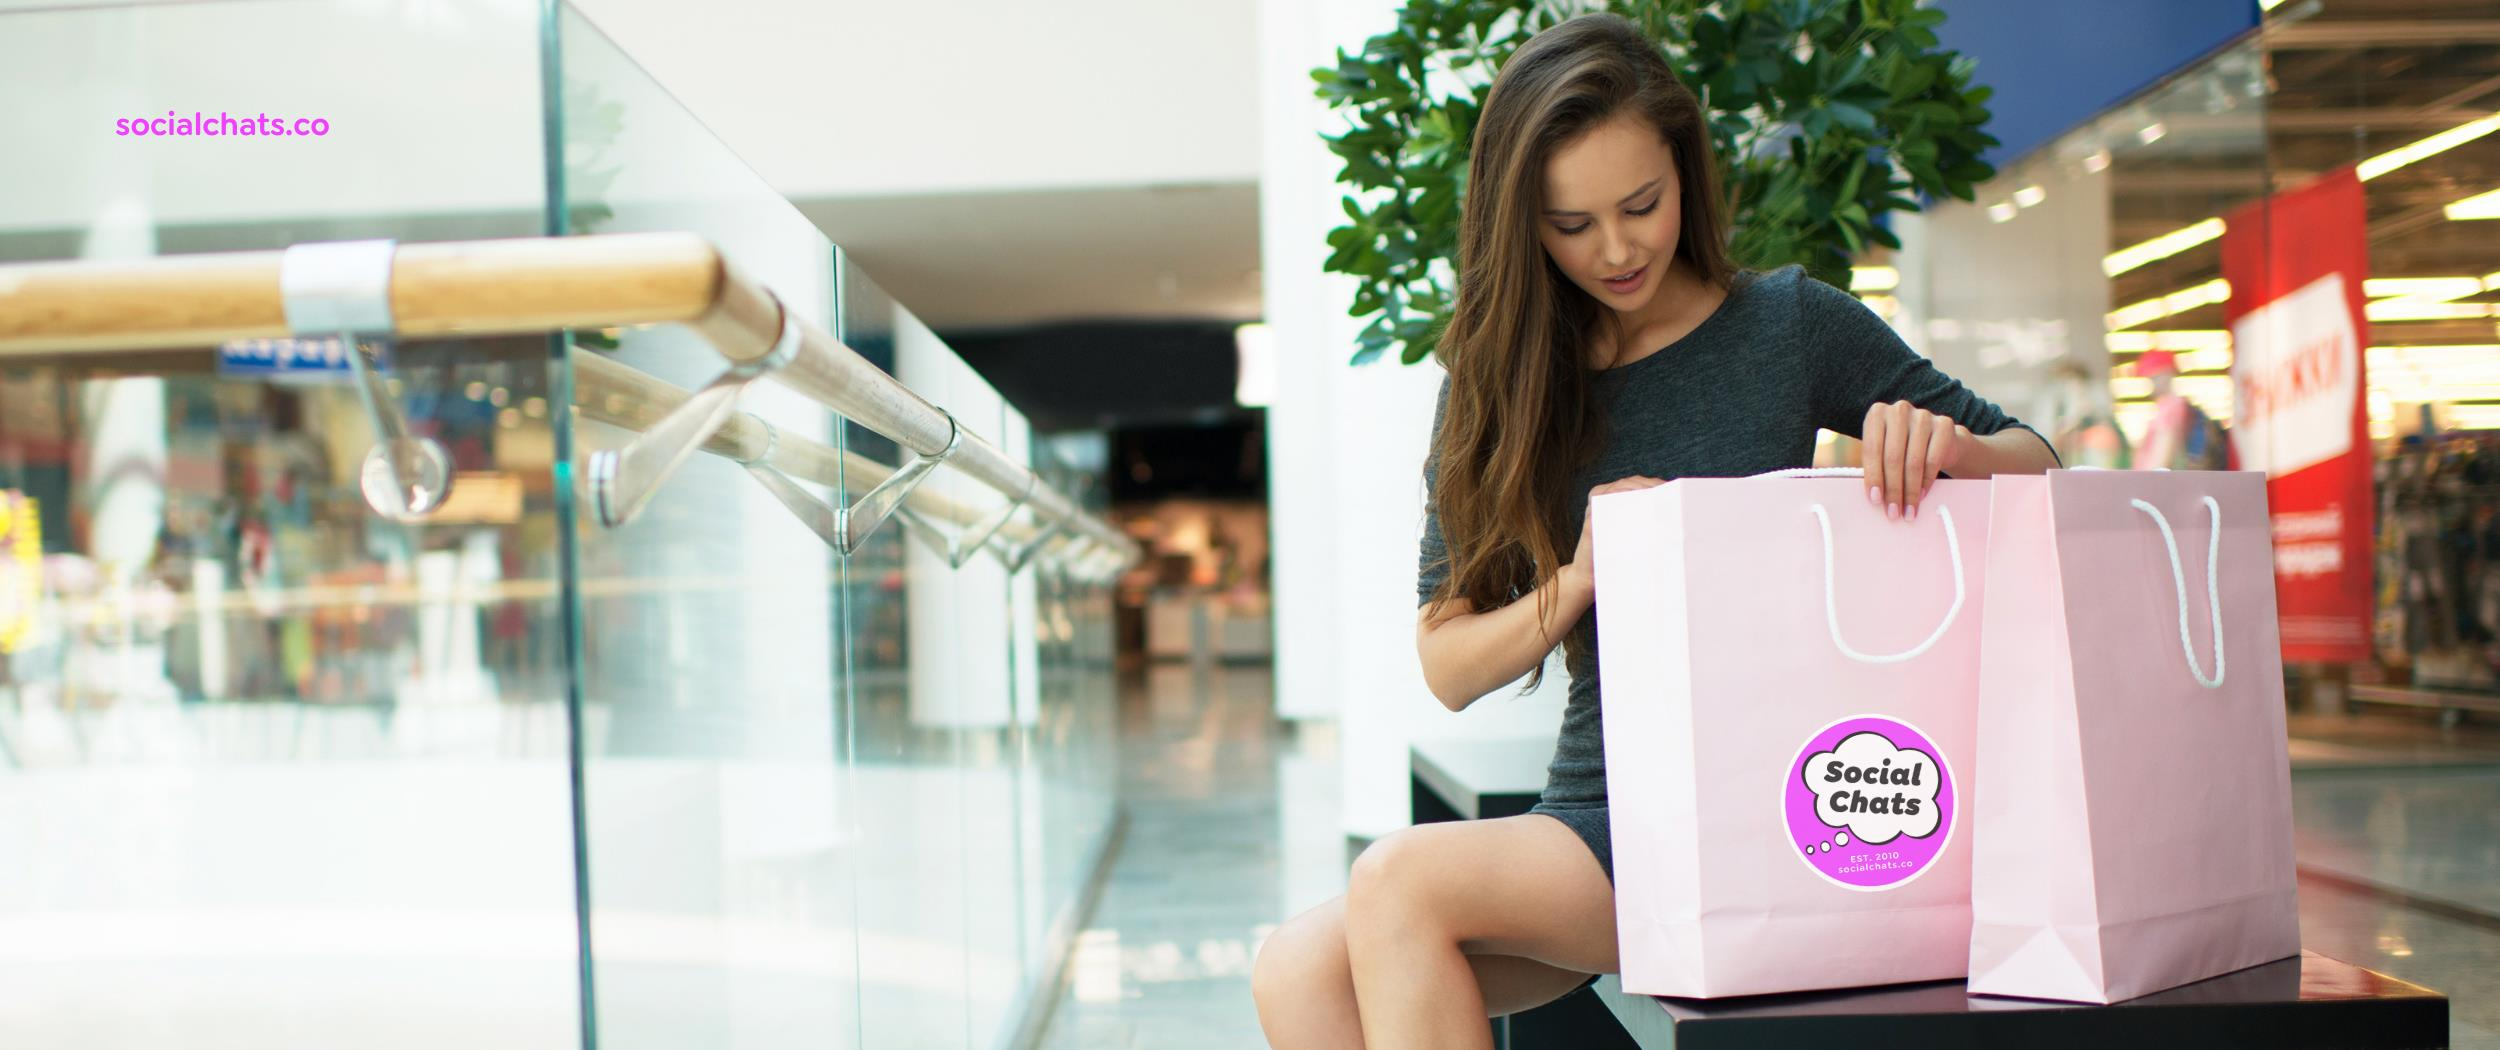 Woman shopping at an empty mall.